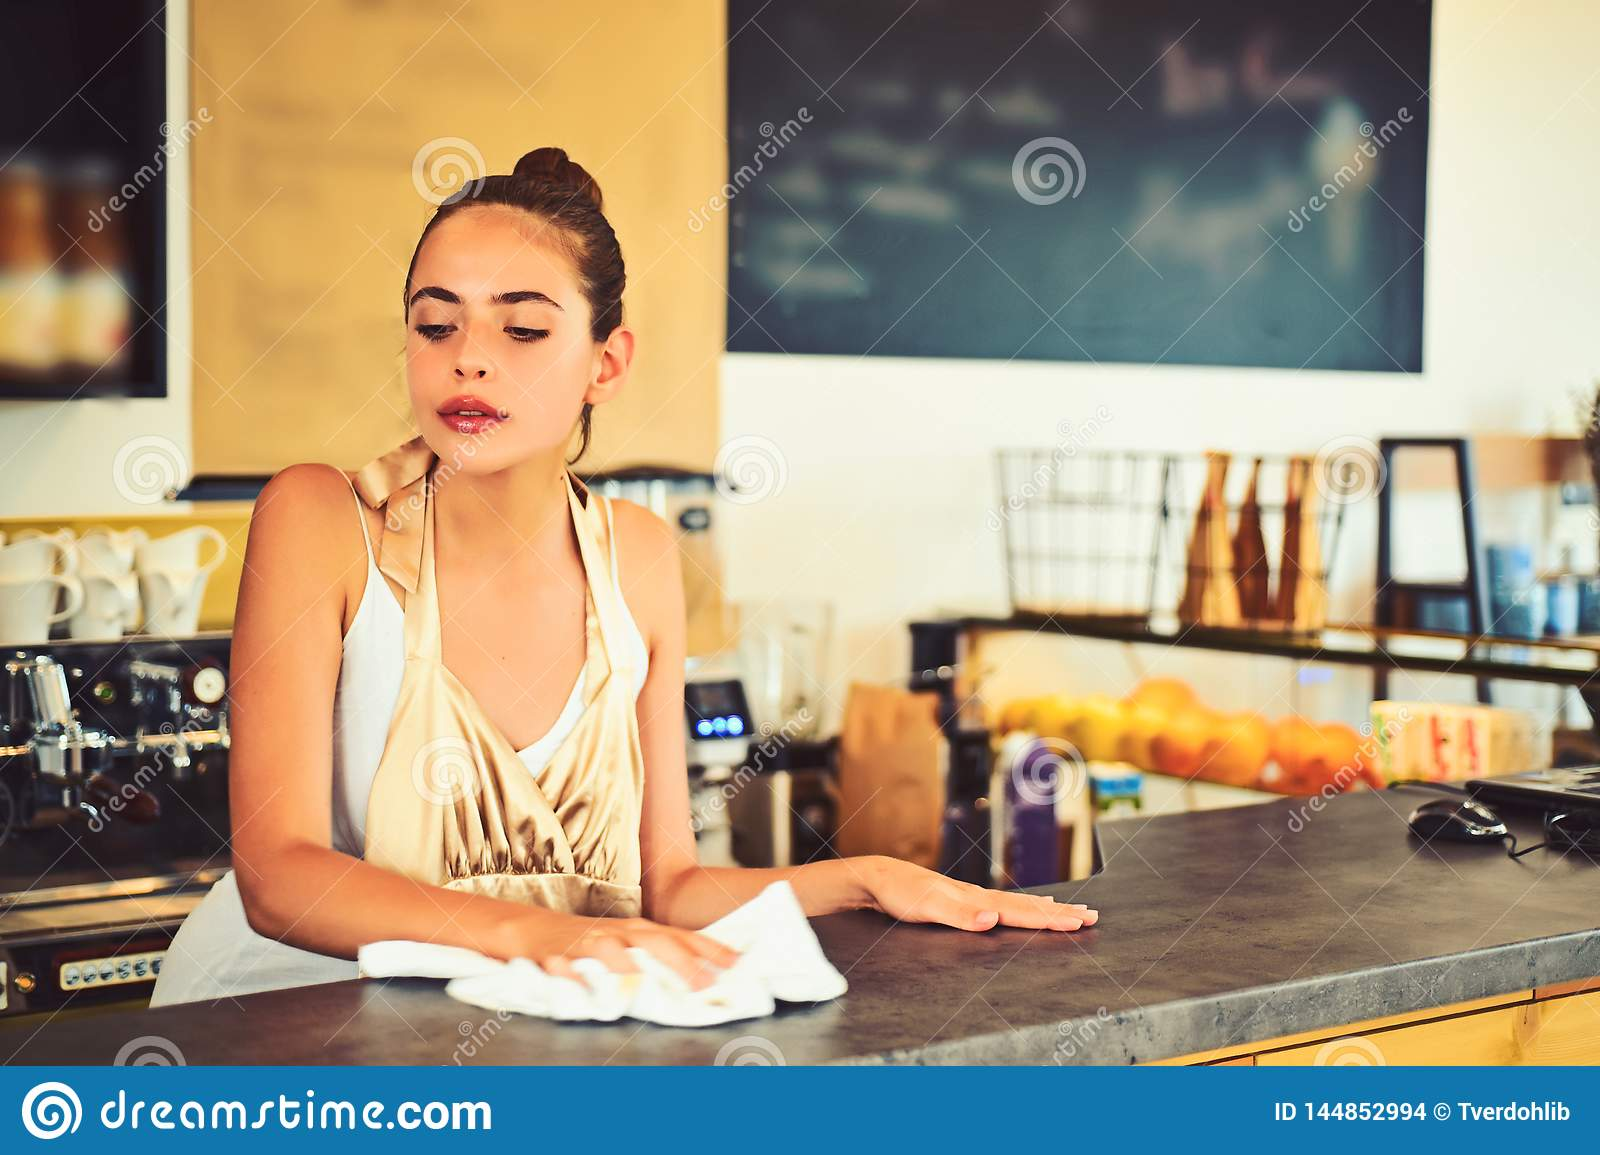 Keeping everything clean. Pretty woman stand behind cafe counter. Cute bartender or bar keeper. Barista clean counter